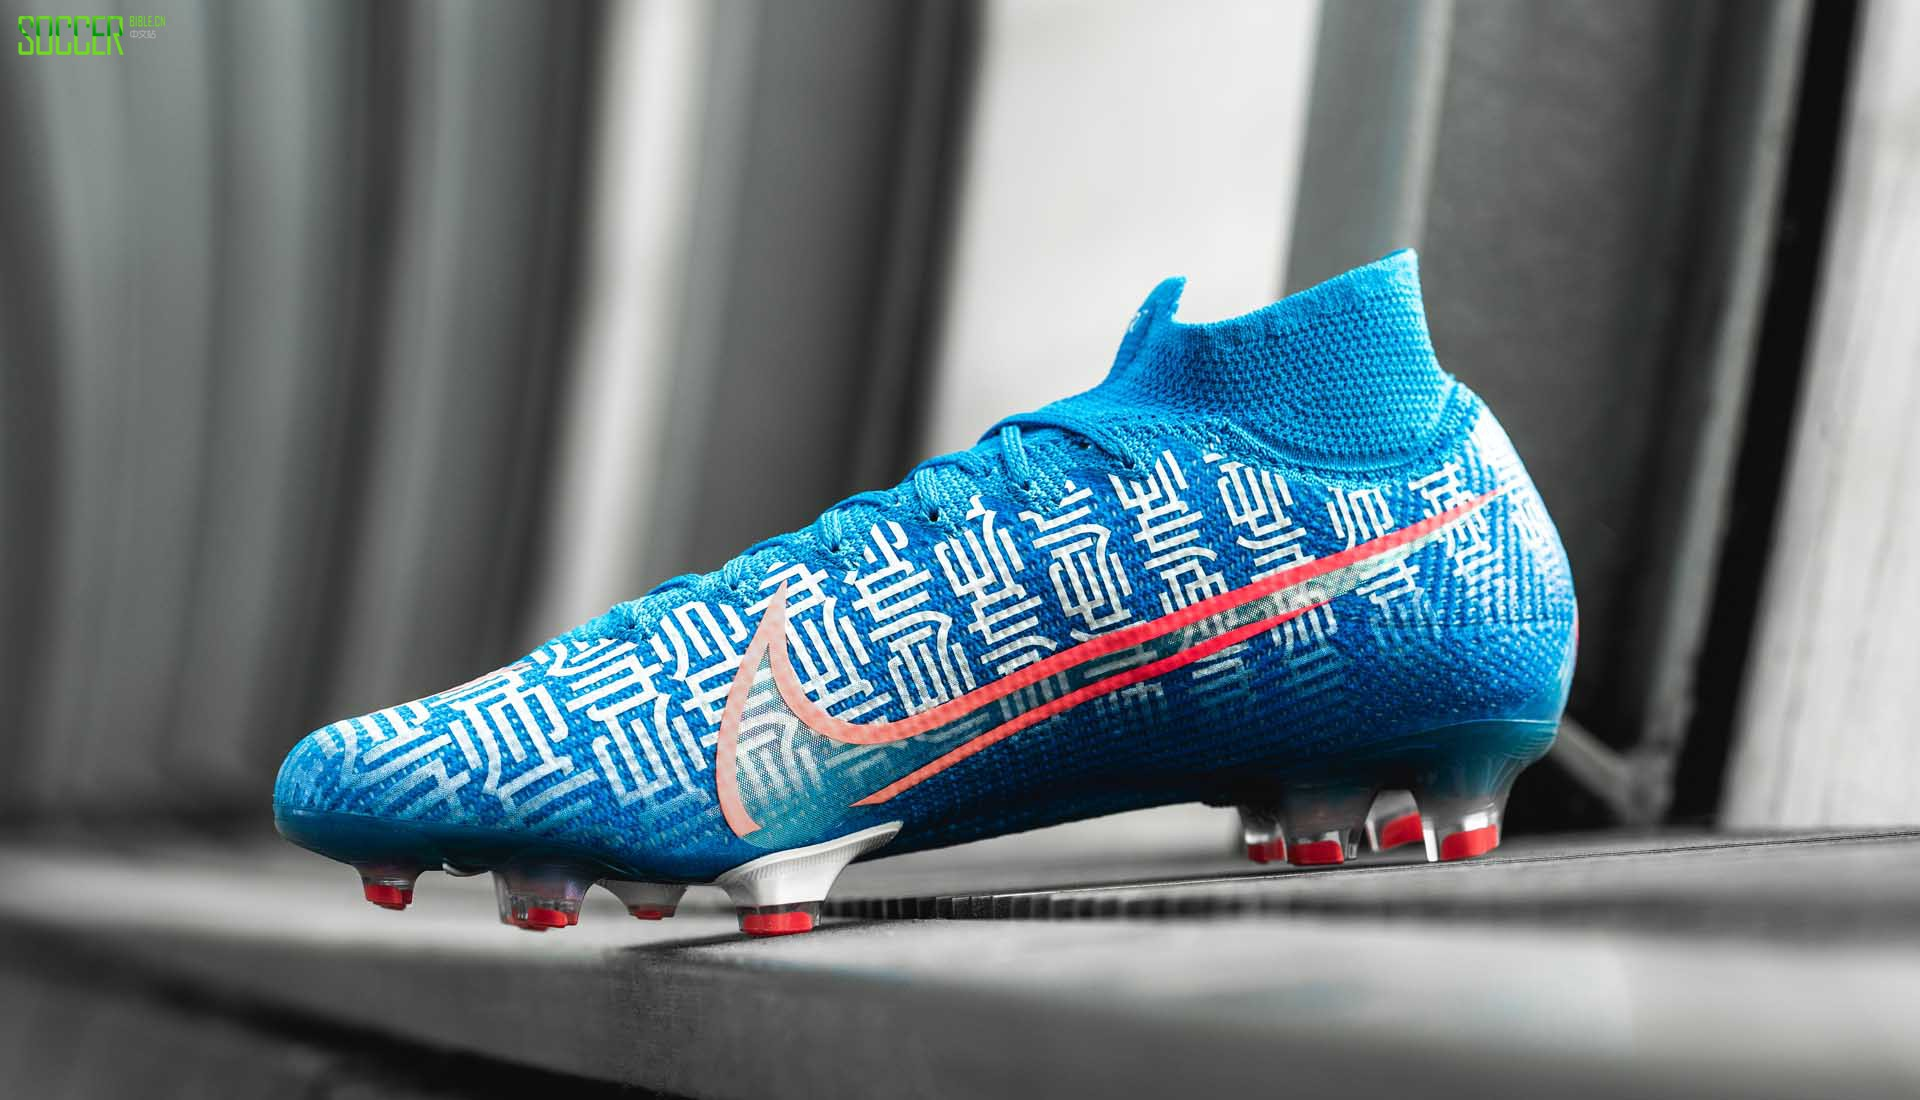 7-cr7-china-mercurial